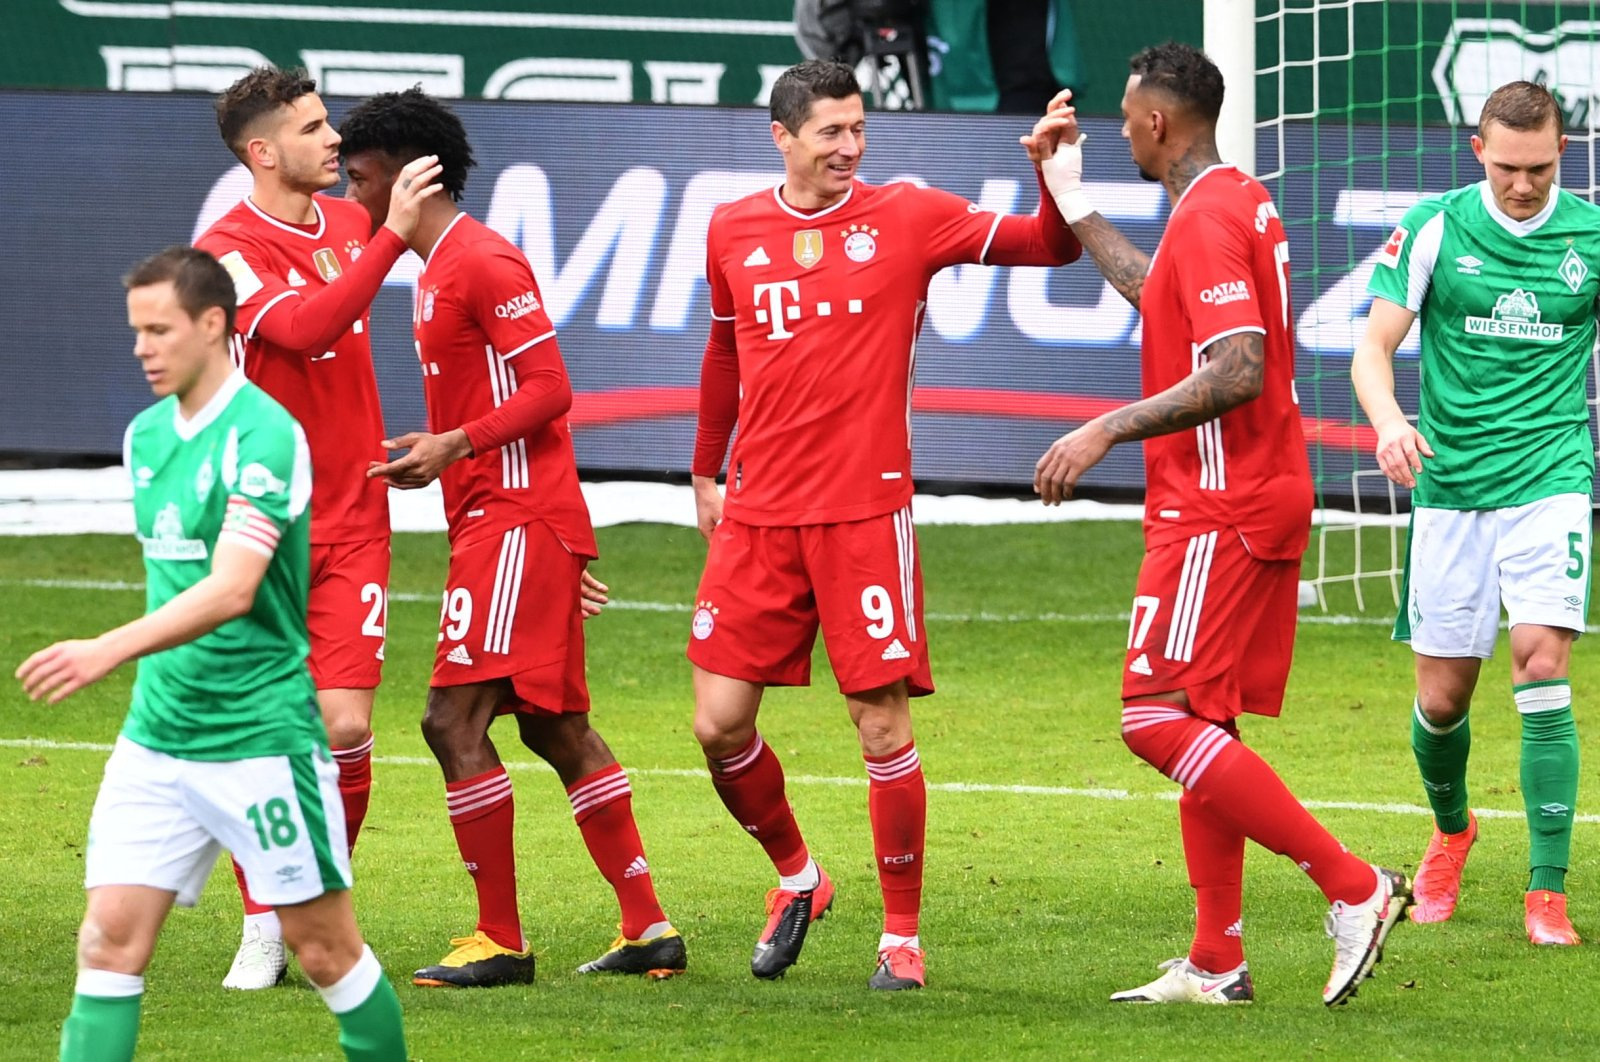 Bayern Munich's Polish forward Robert Lewandowski (C) celebrates with teammates during a Bundesliga match against Werder Bremen, Bremen, northern Germany, March 13, 2021. (AFP Photo)